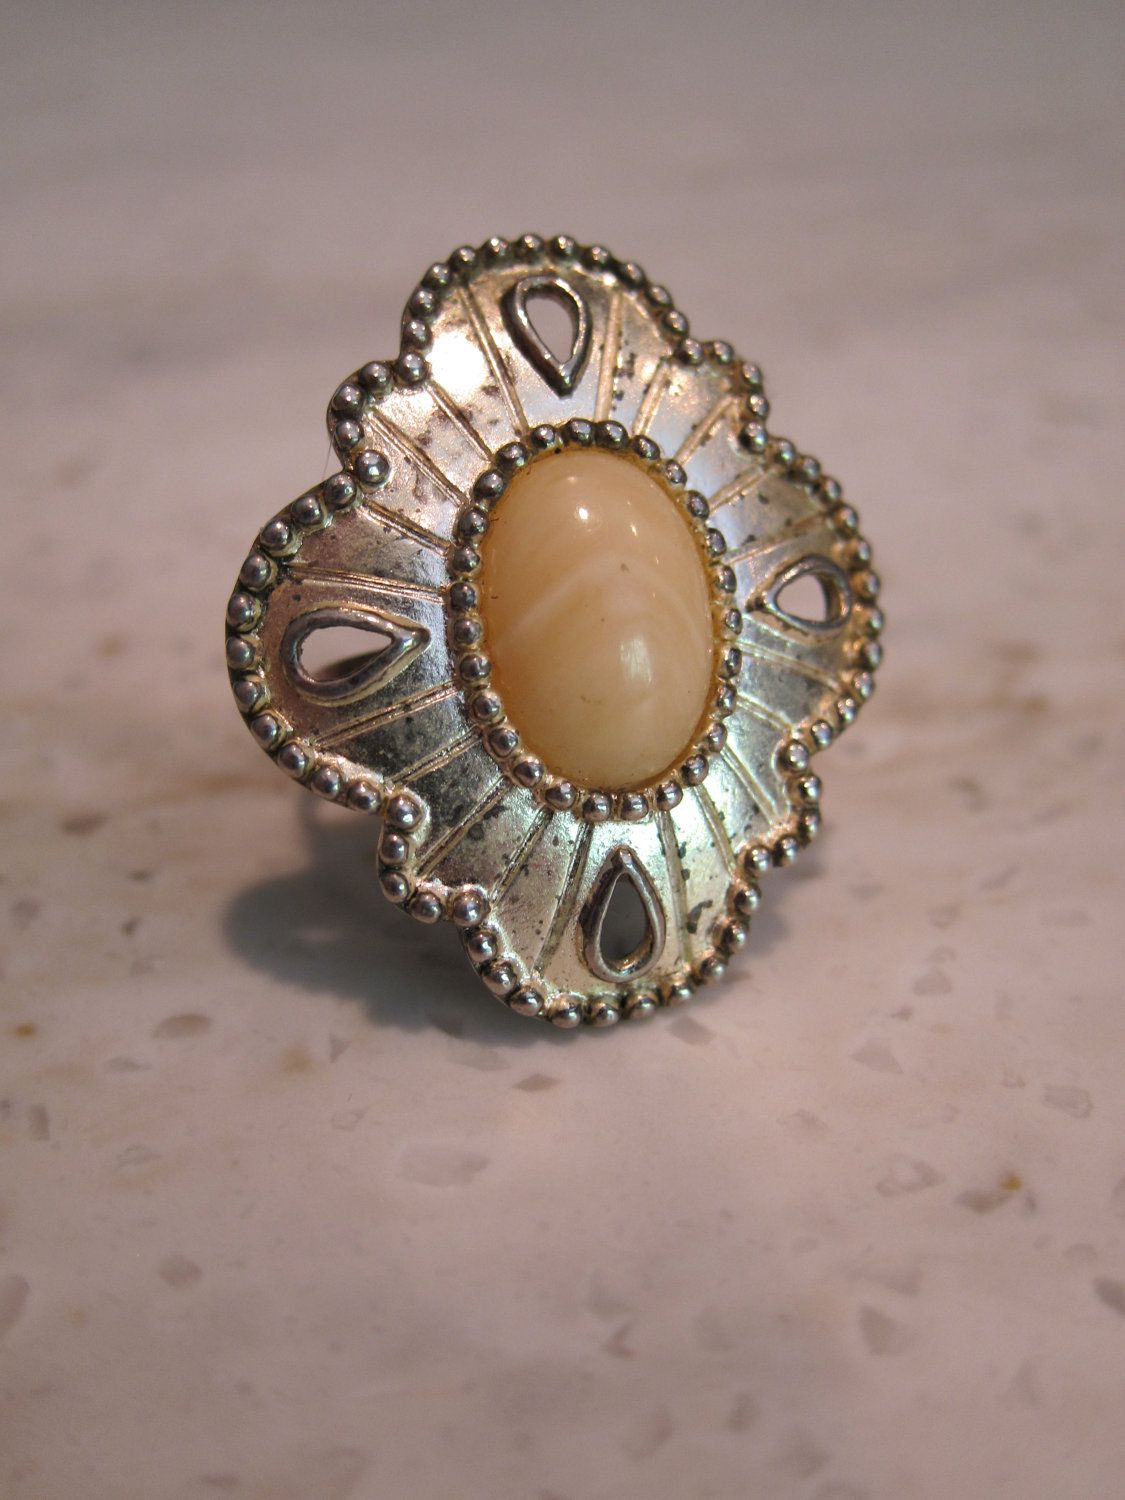 Ring Upcycled from Vintage Clip-On Earring